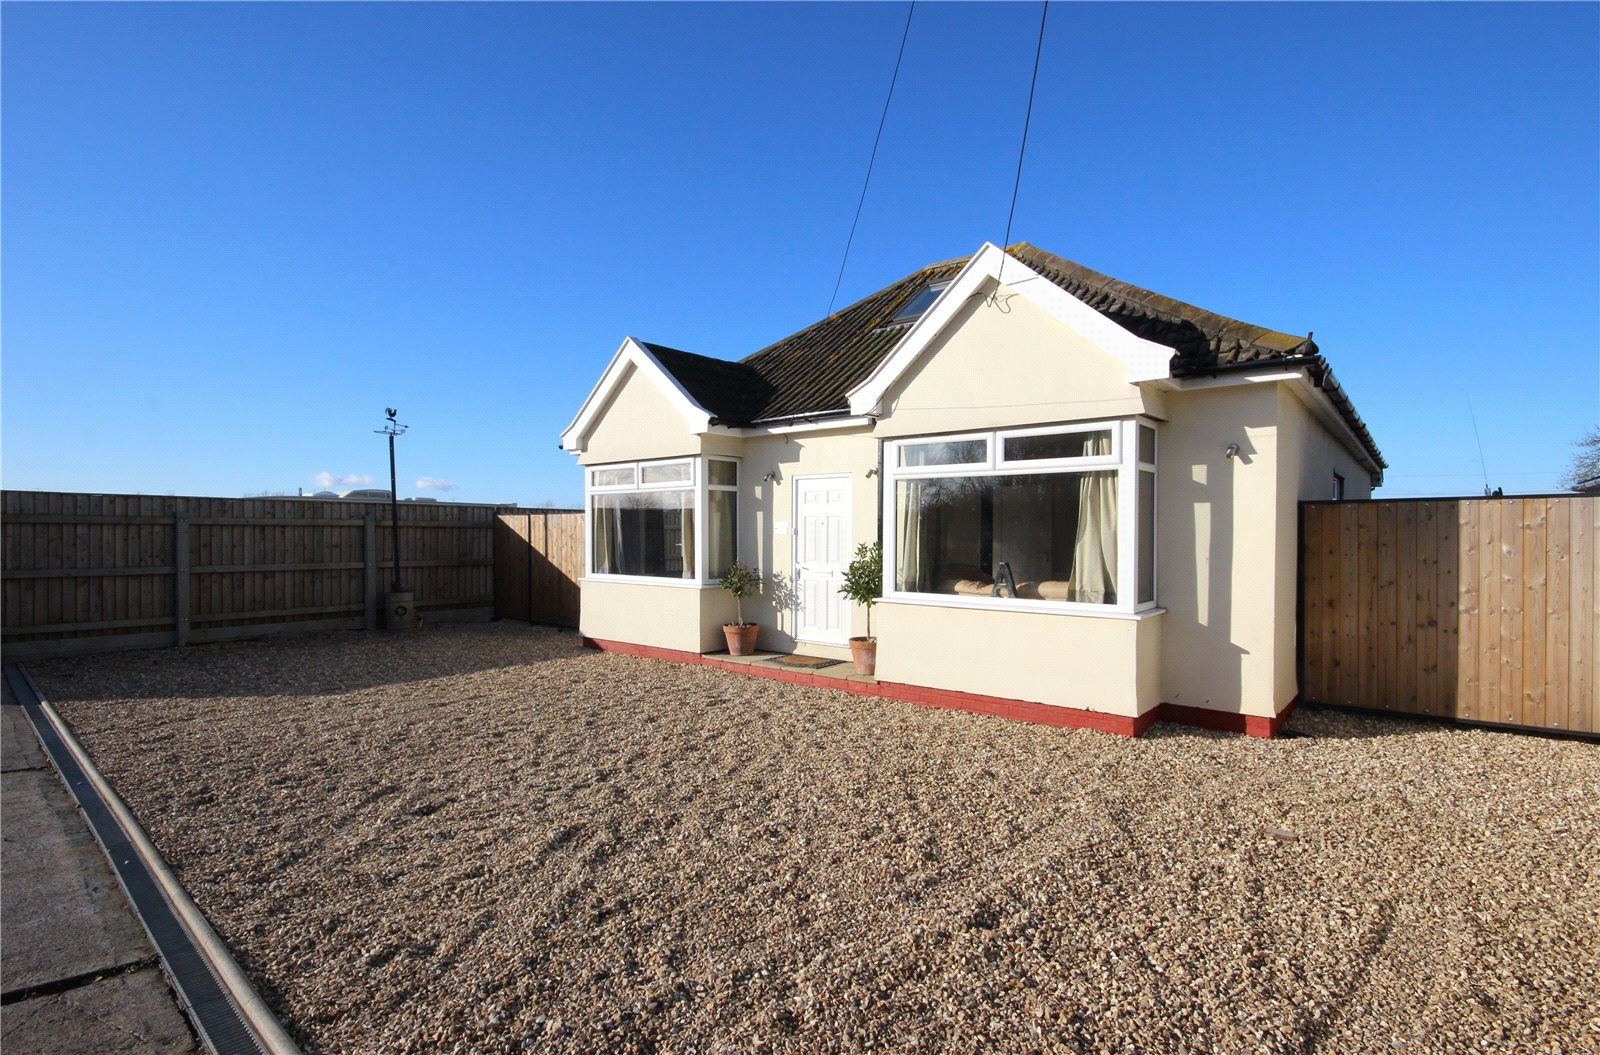 3 Bedrooms Bungalow for sale in Marsh Common Road Pilning Bristol BS35